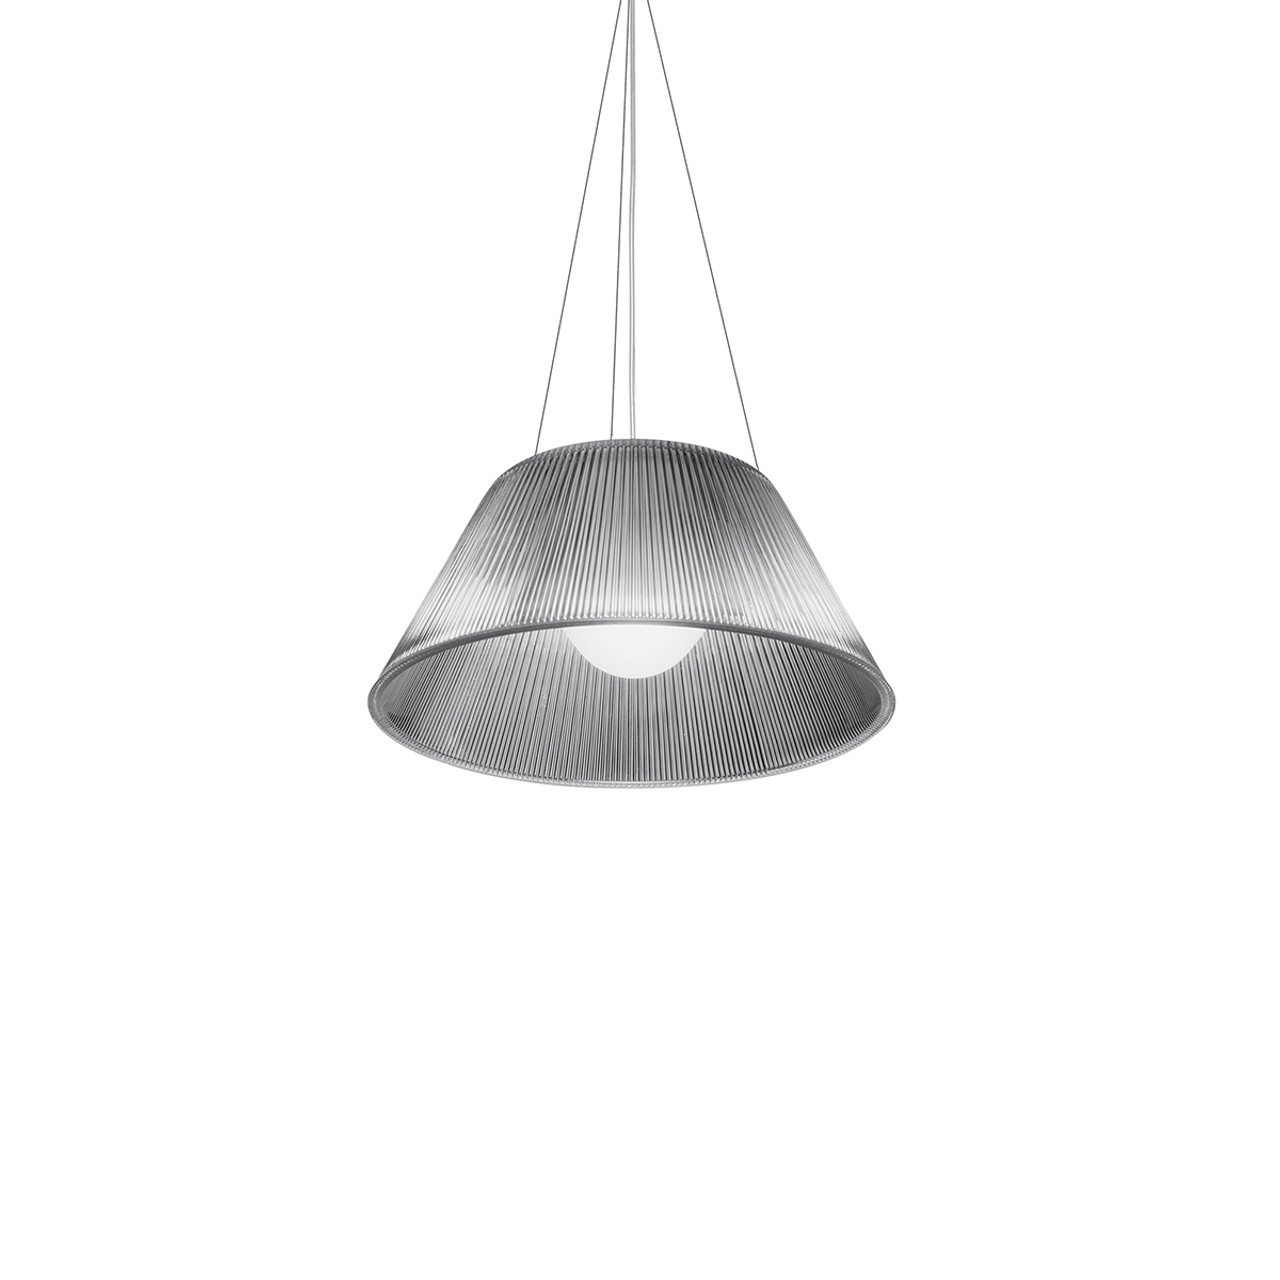 Romeo Moon Suspension Modern Pendant Light By Philippe Starck Flos Usa